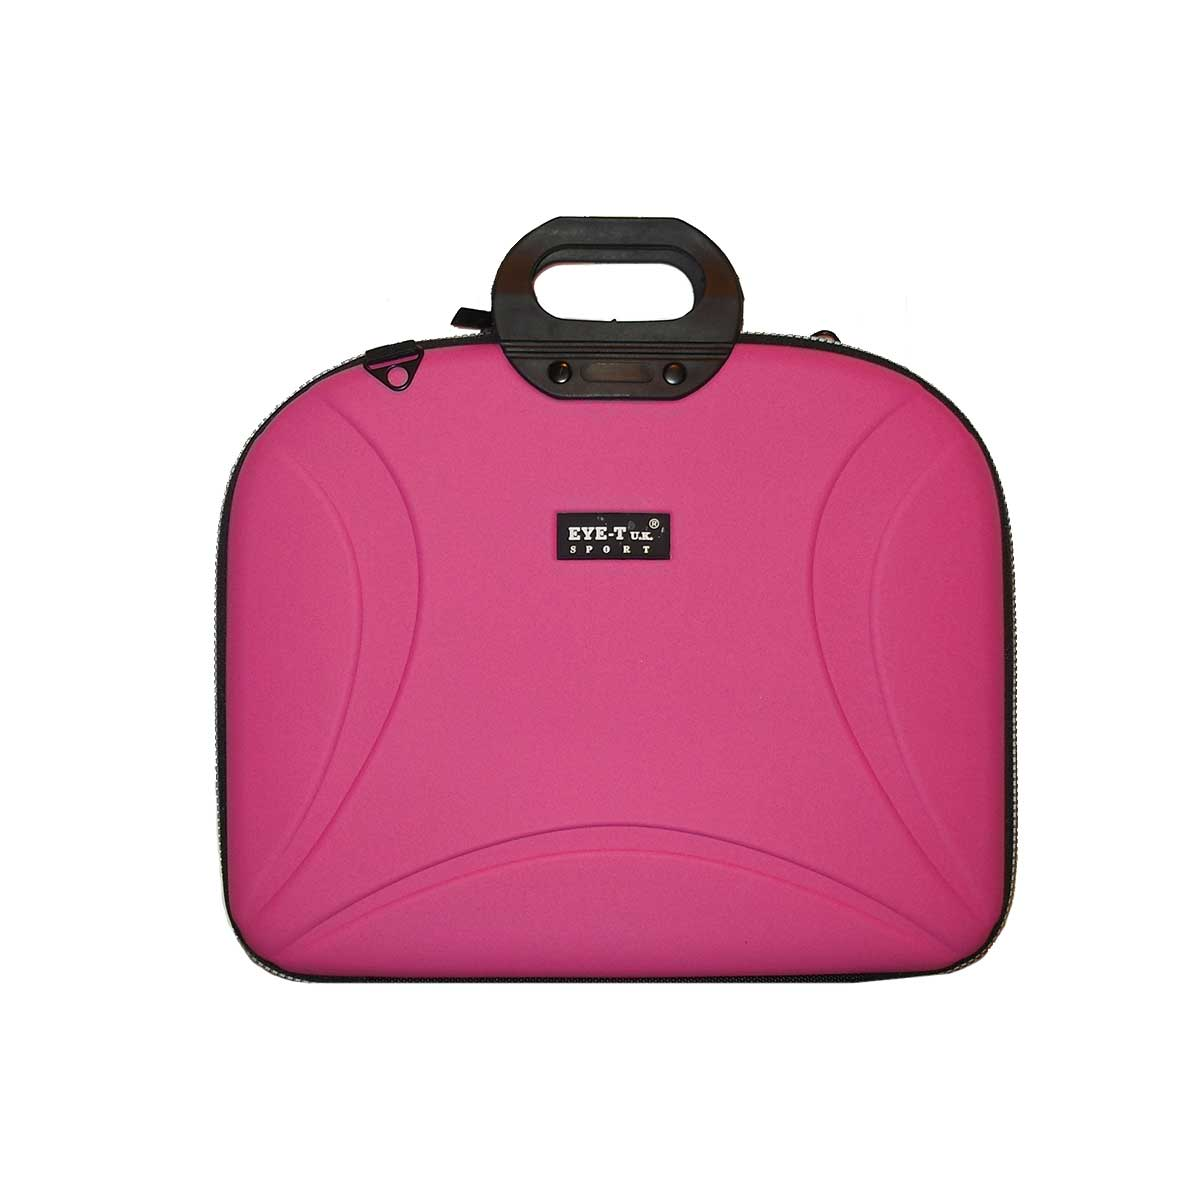 EVA Laptop Bag 15inch Pink